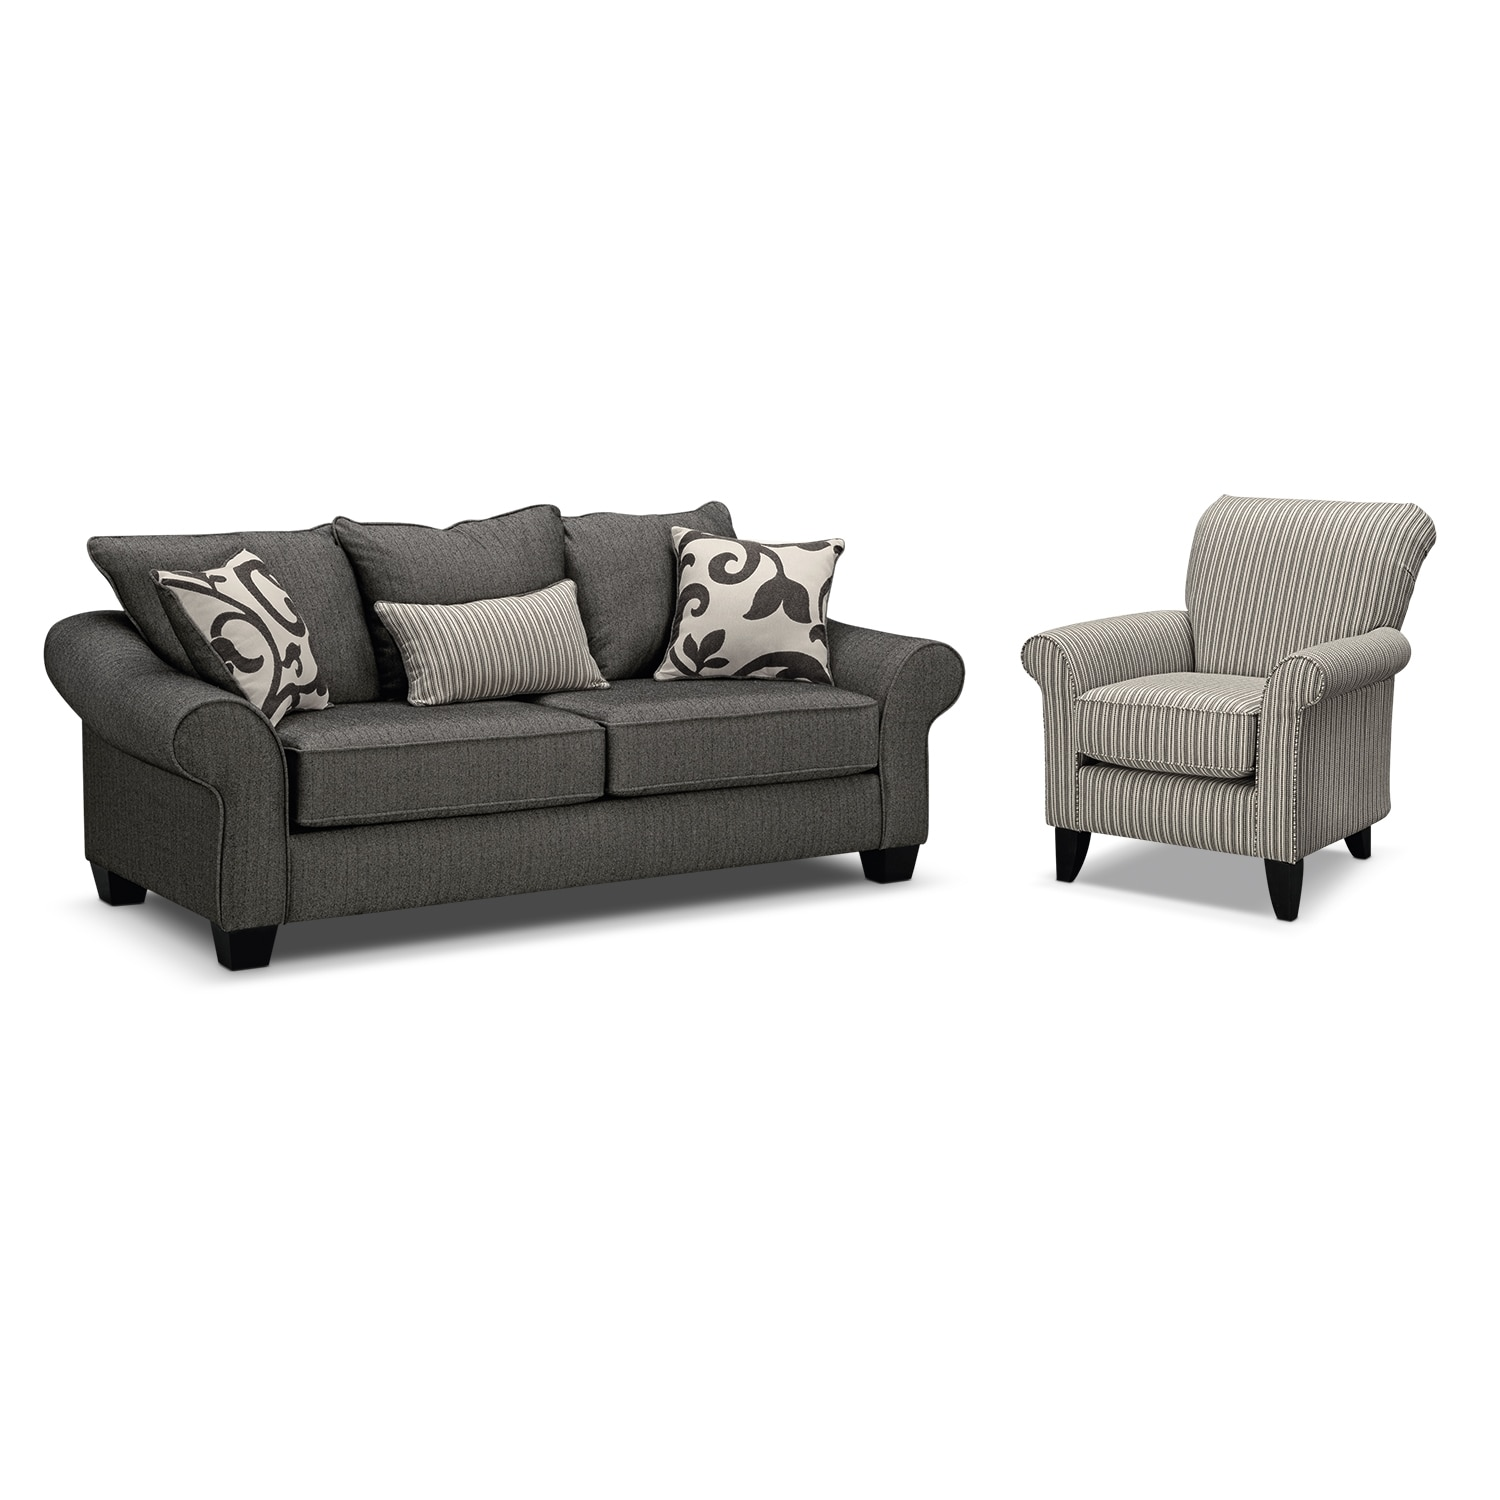 Living Room Furniture - Colette Gray 2 Pc. Sleeper Living Room with Accent Chair and Innerspring Mattress